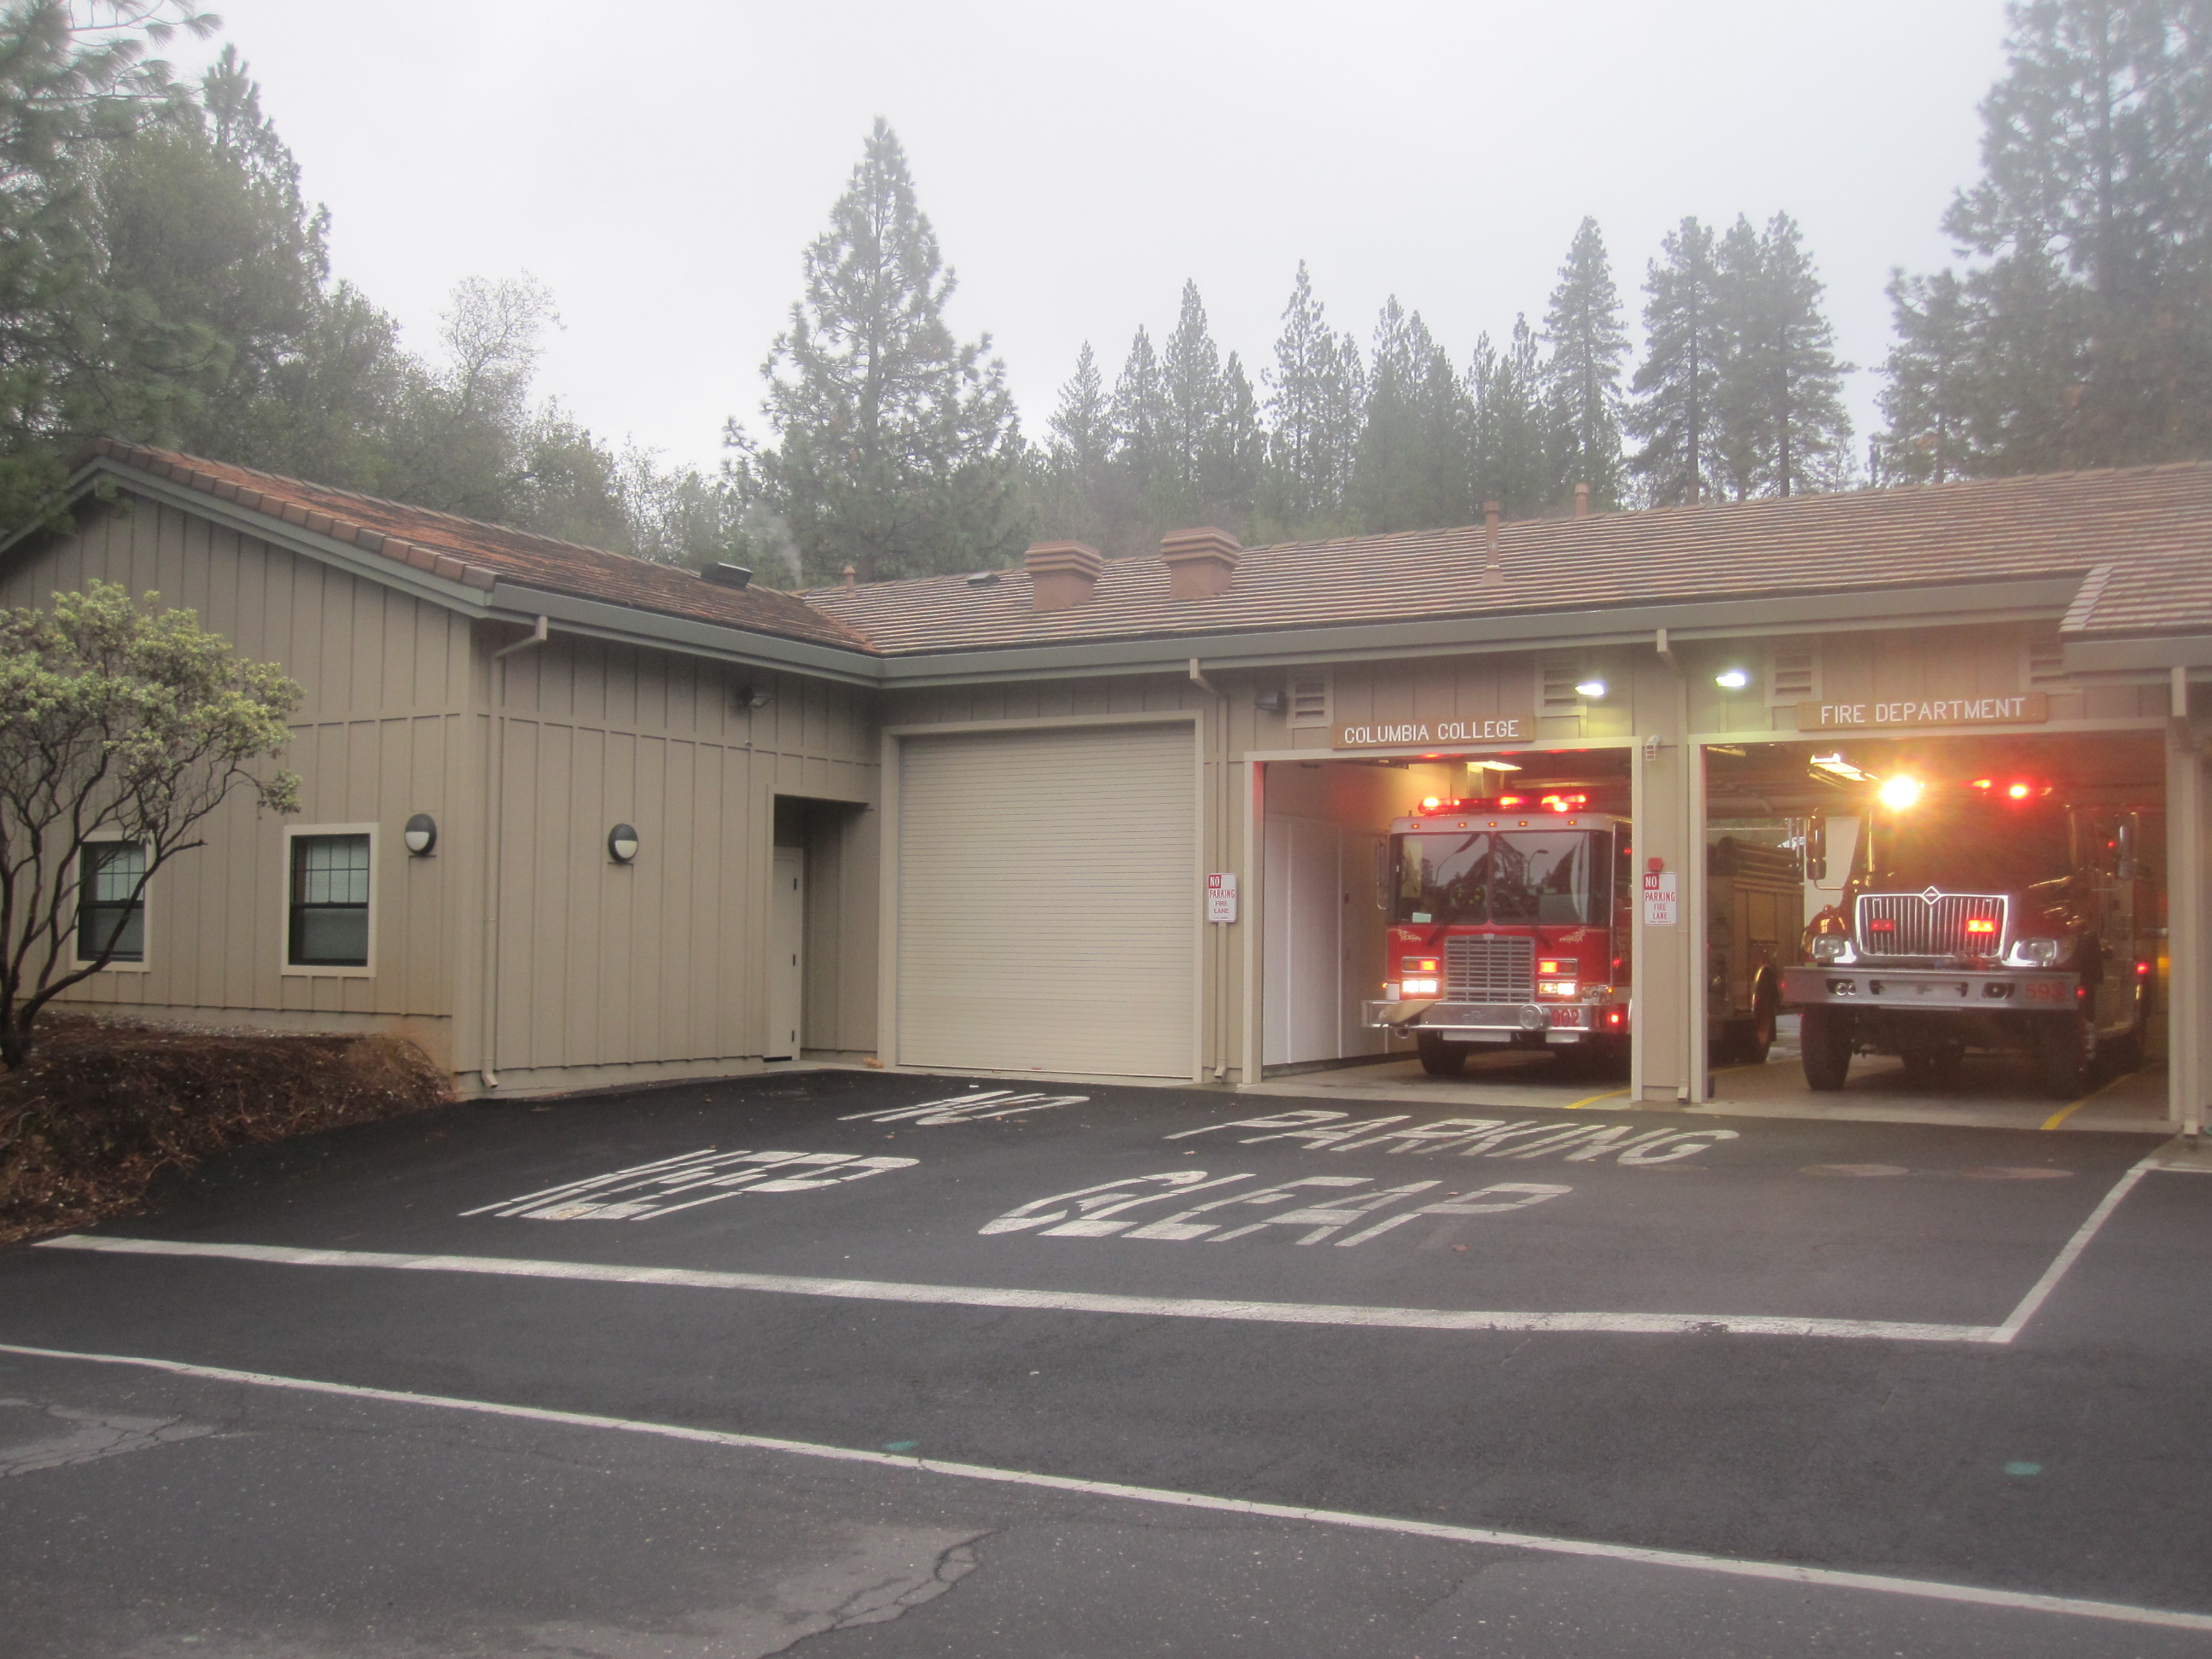 Photo of Columbia College Fire Department